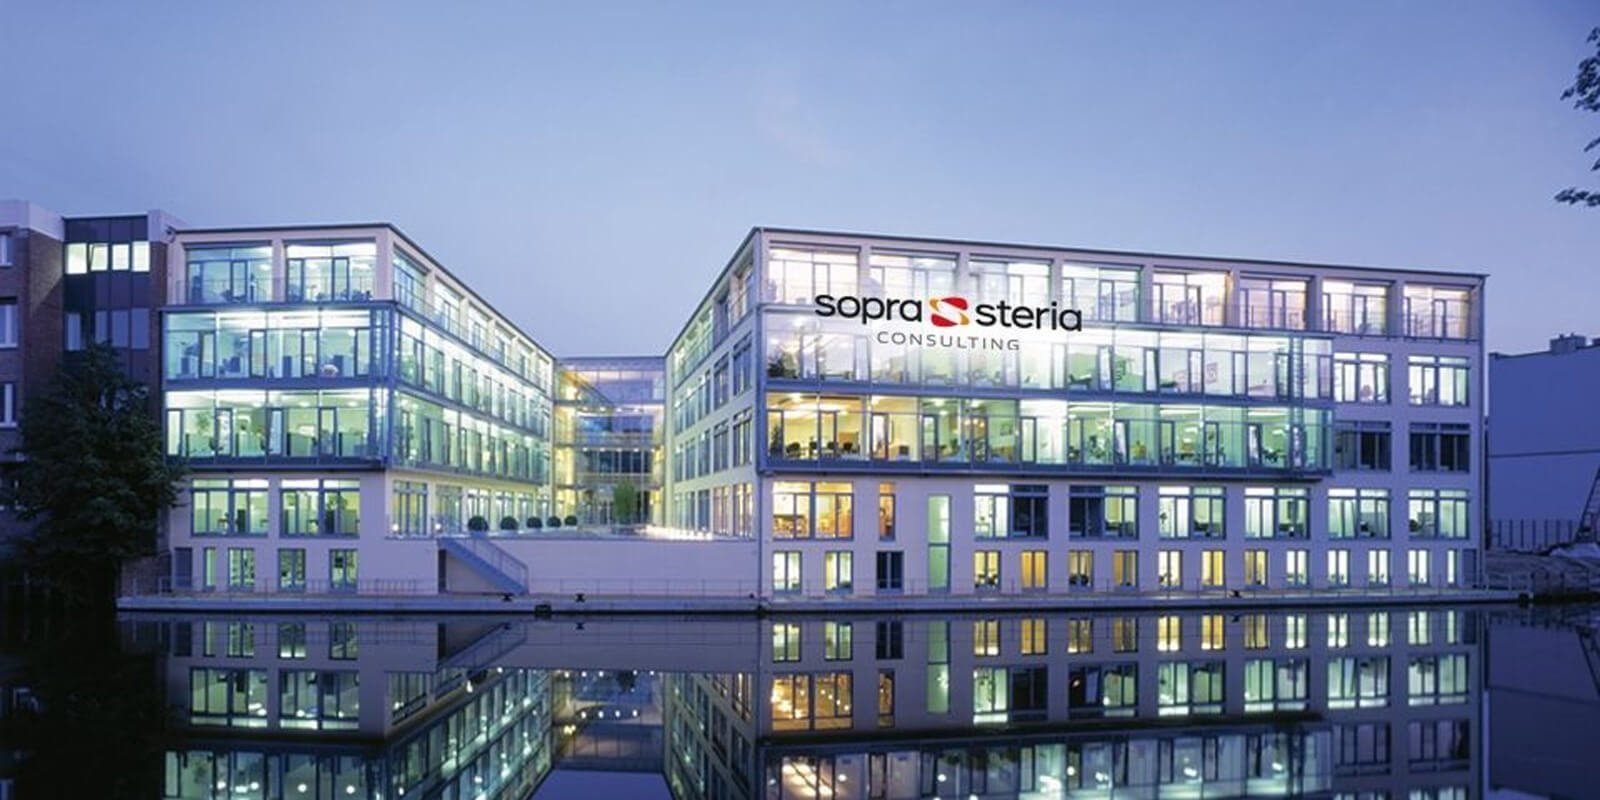 Sopra Steria Confirms Being Hit by Ryuk Ransomware Attack